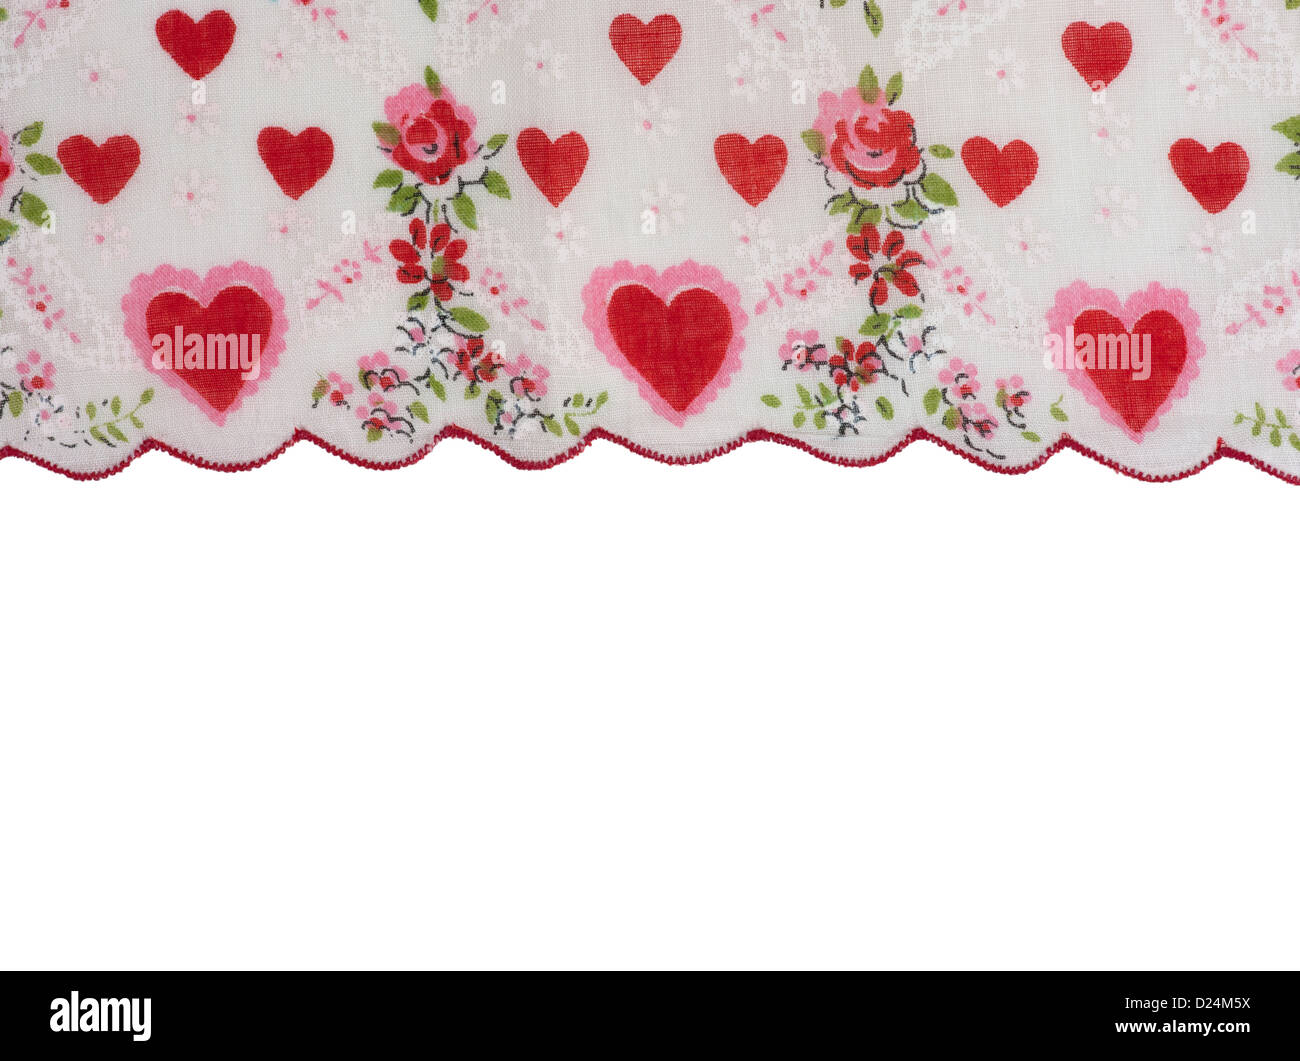 Scallop Edge With Red Valentine Hearts For A Border Made Of A Stock